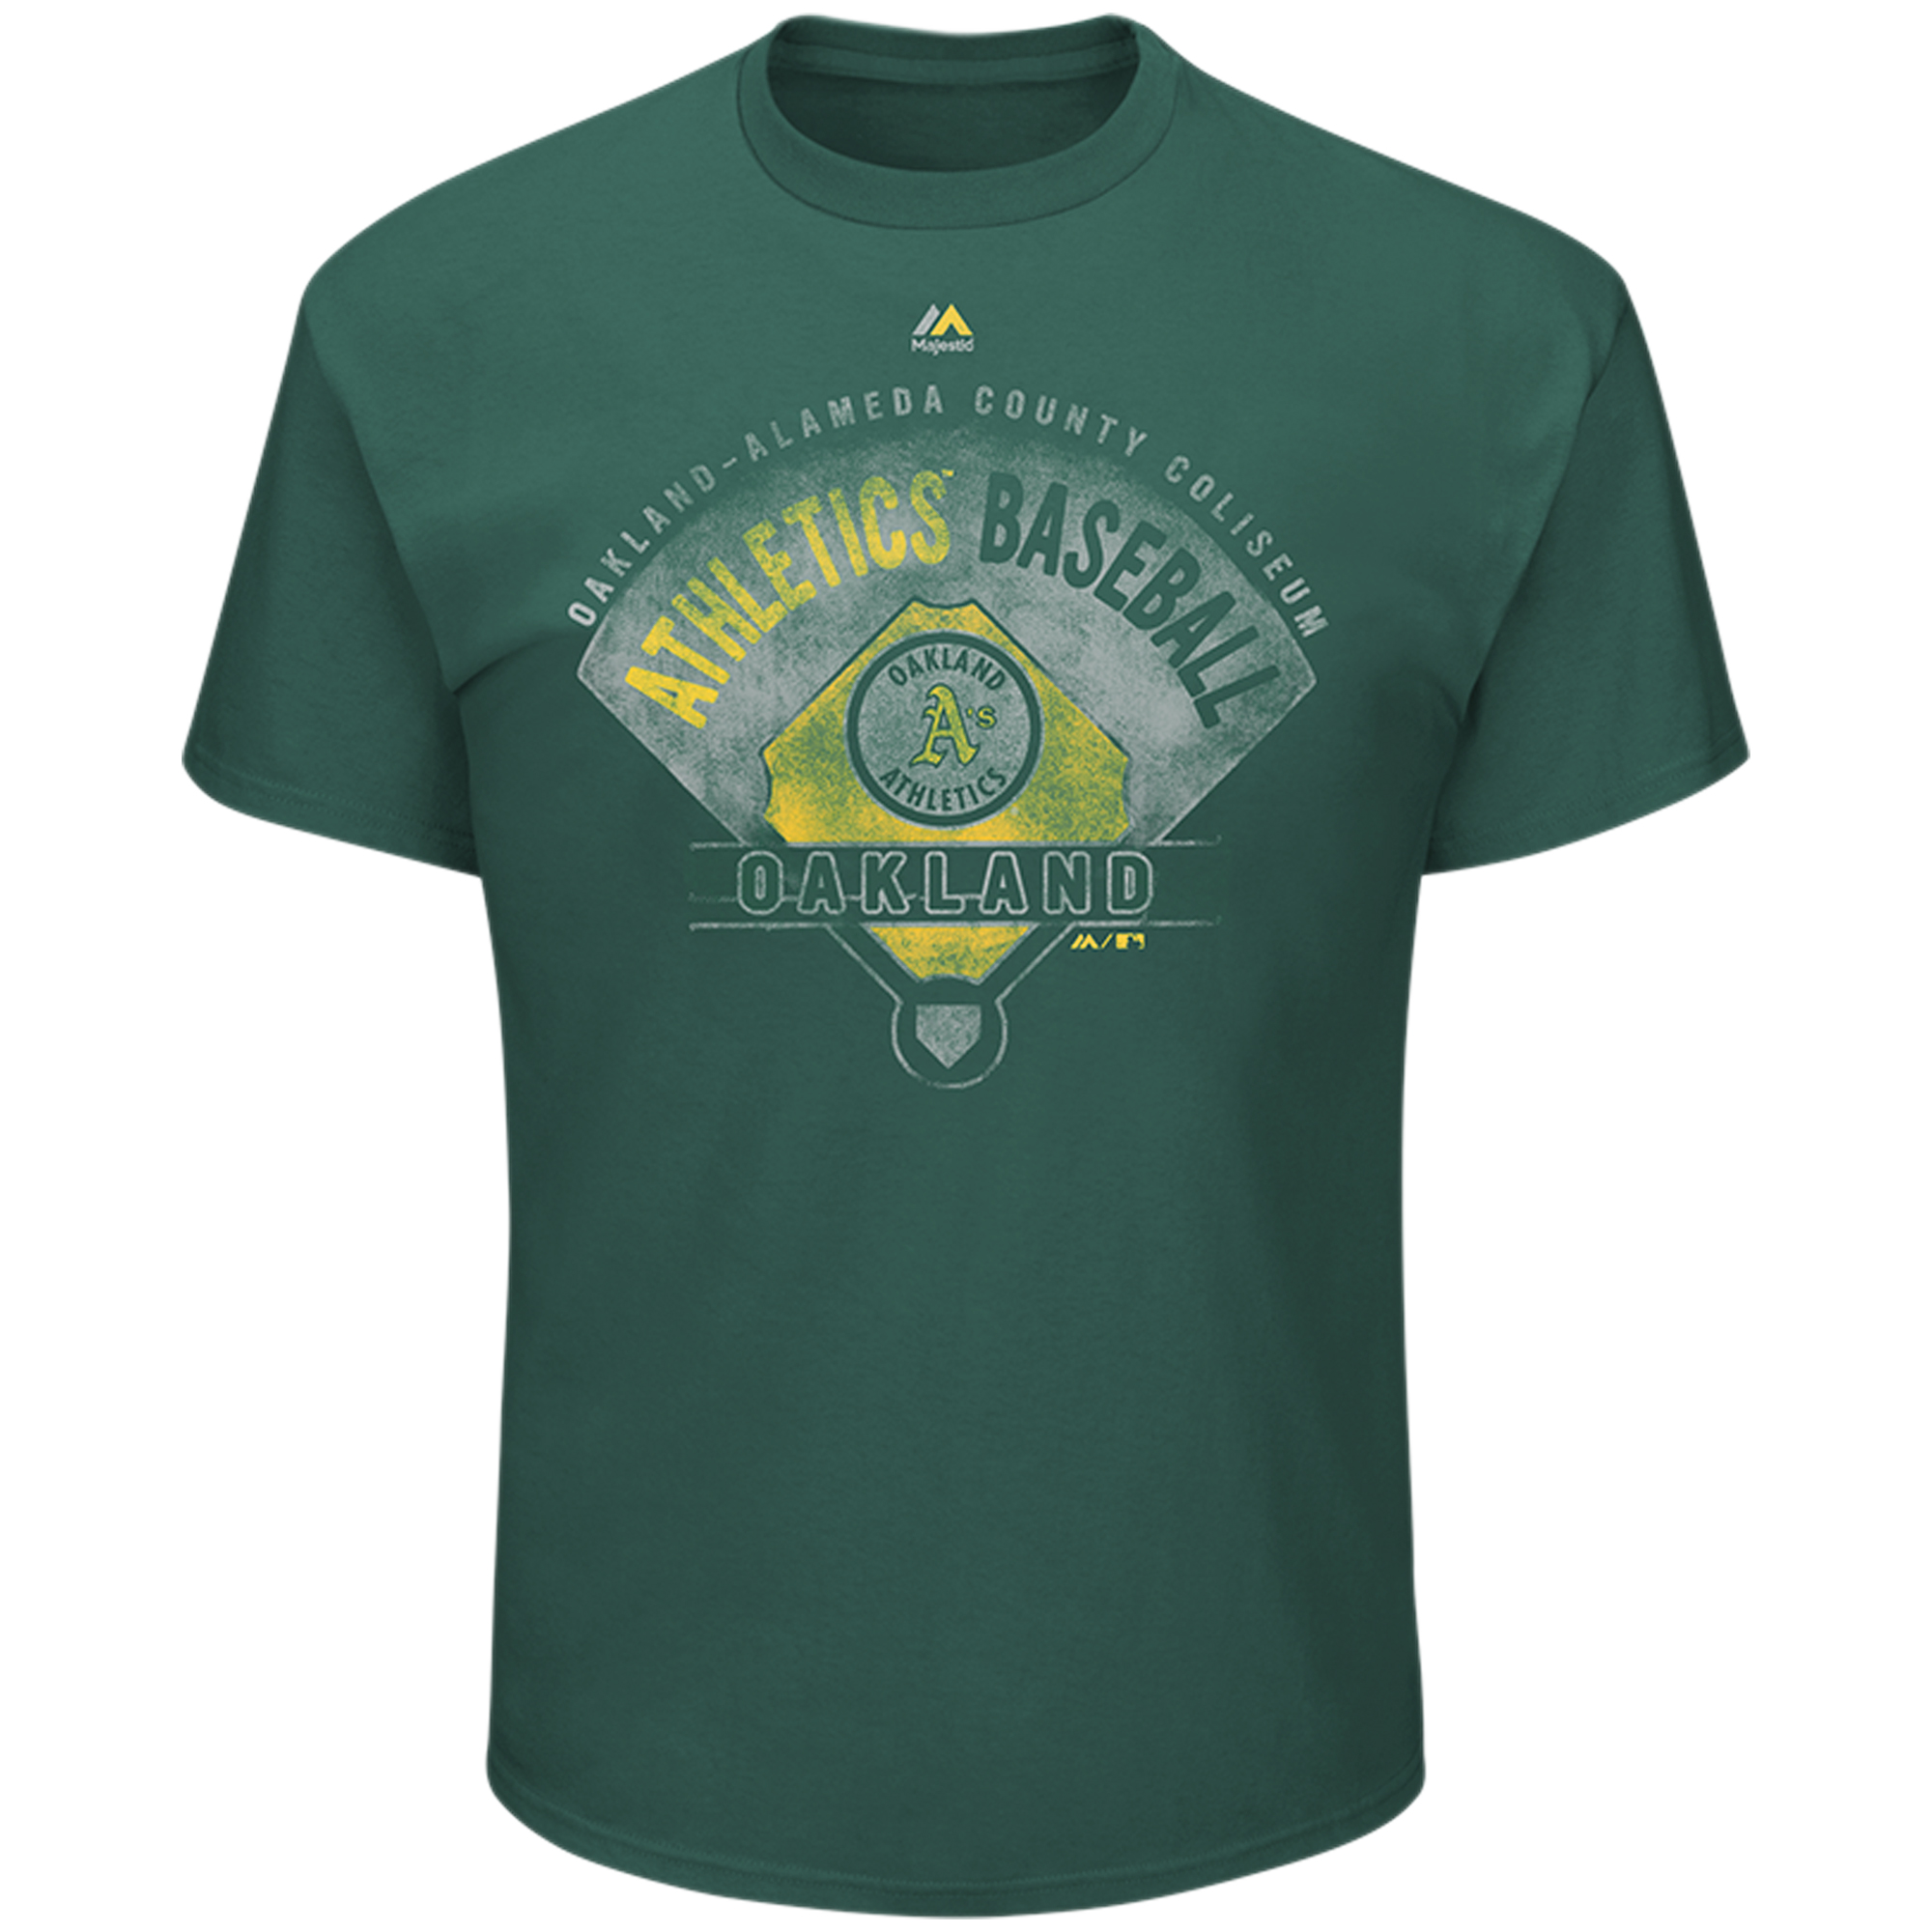 Oakland Athletics Cooperstown Collection Strategic Advantage T-Shirt - Green